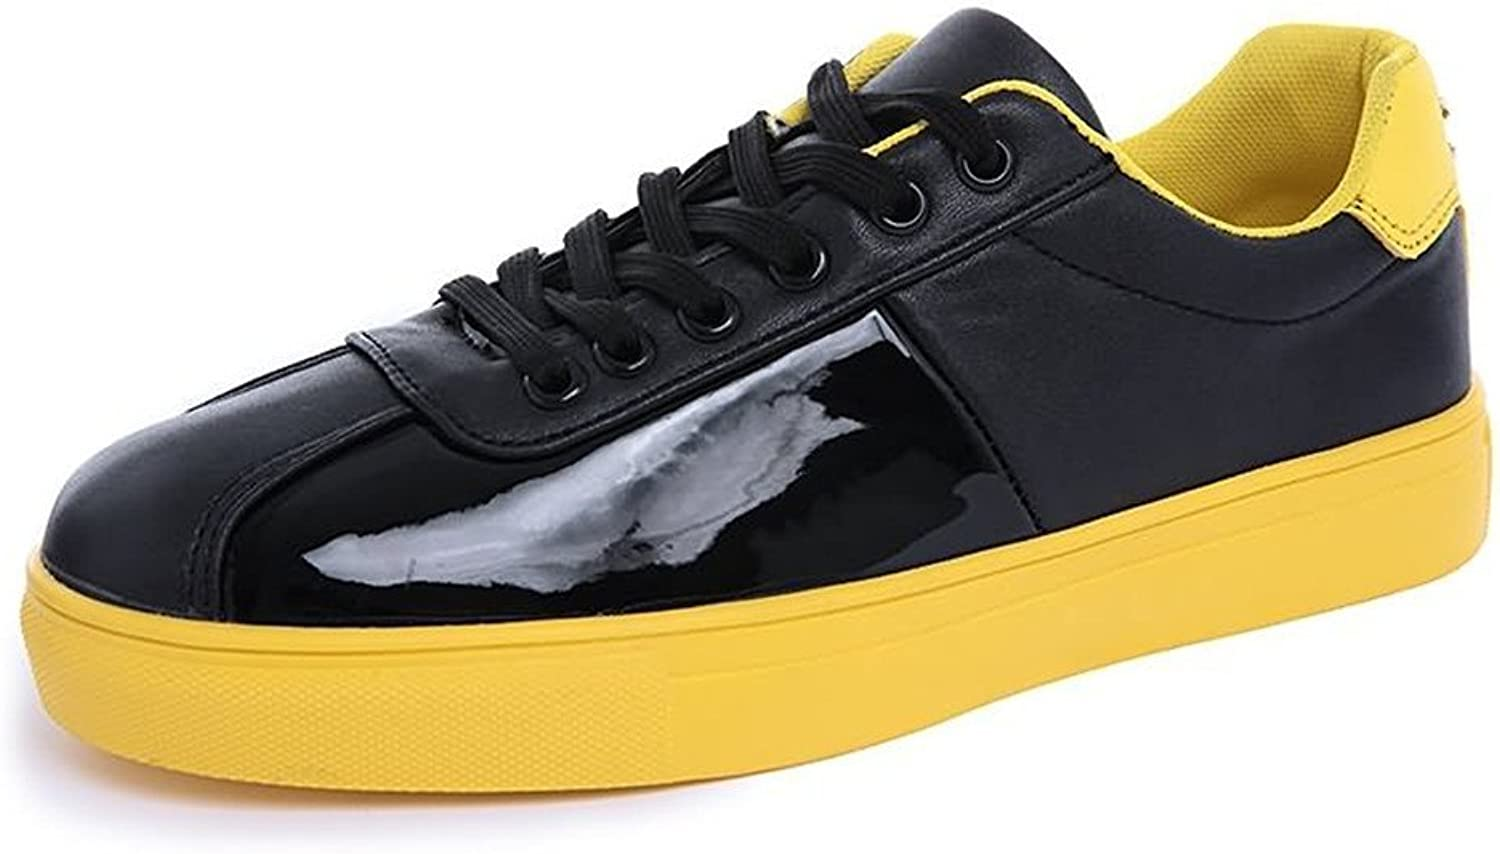 Dig dog bone Men's Sneaker Flat Heel Lace Up Patent Leather Solid color shoes